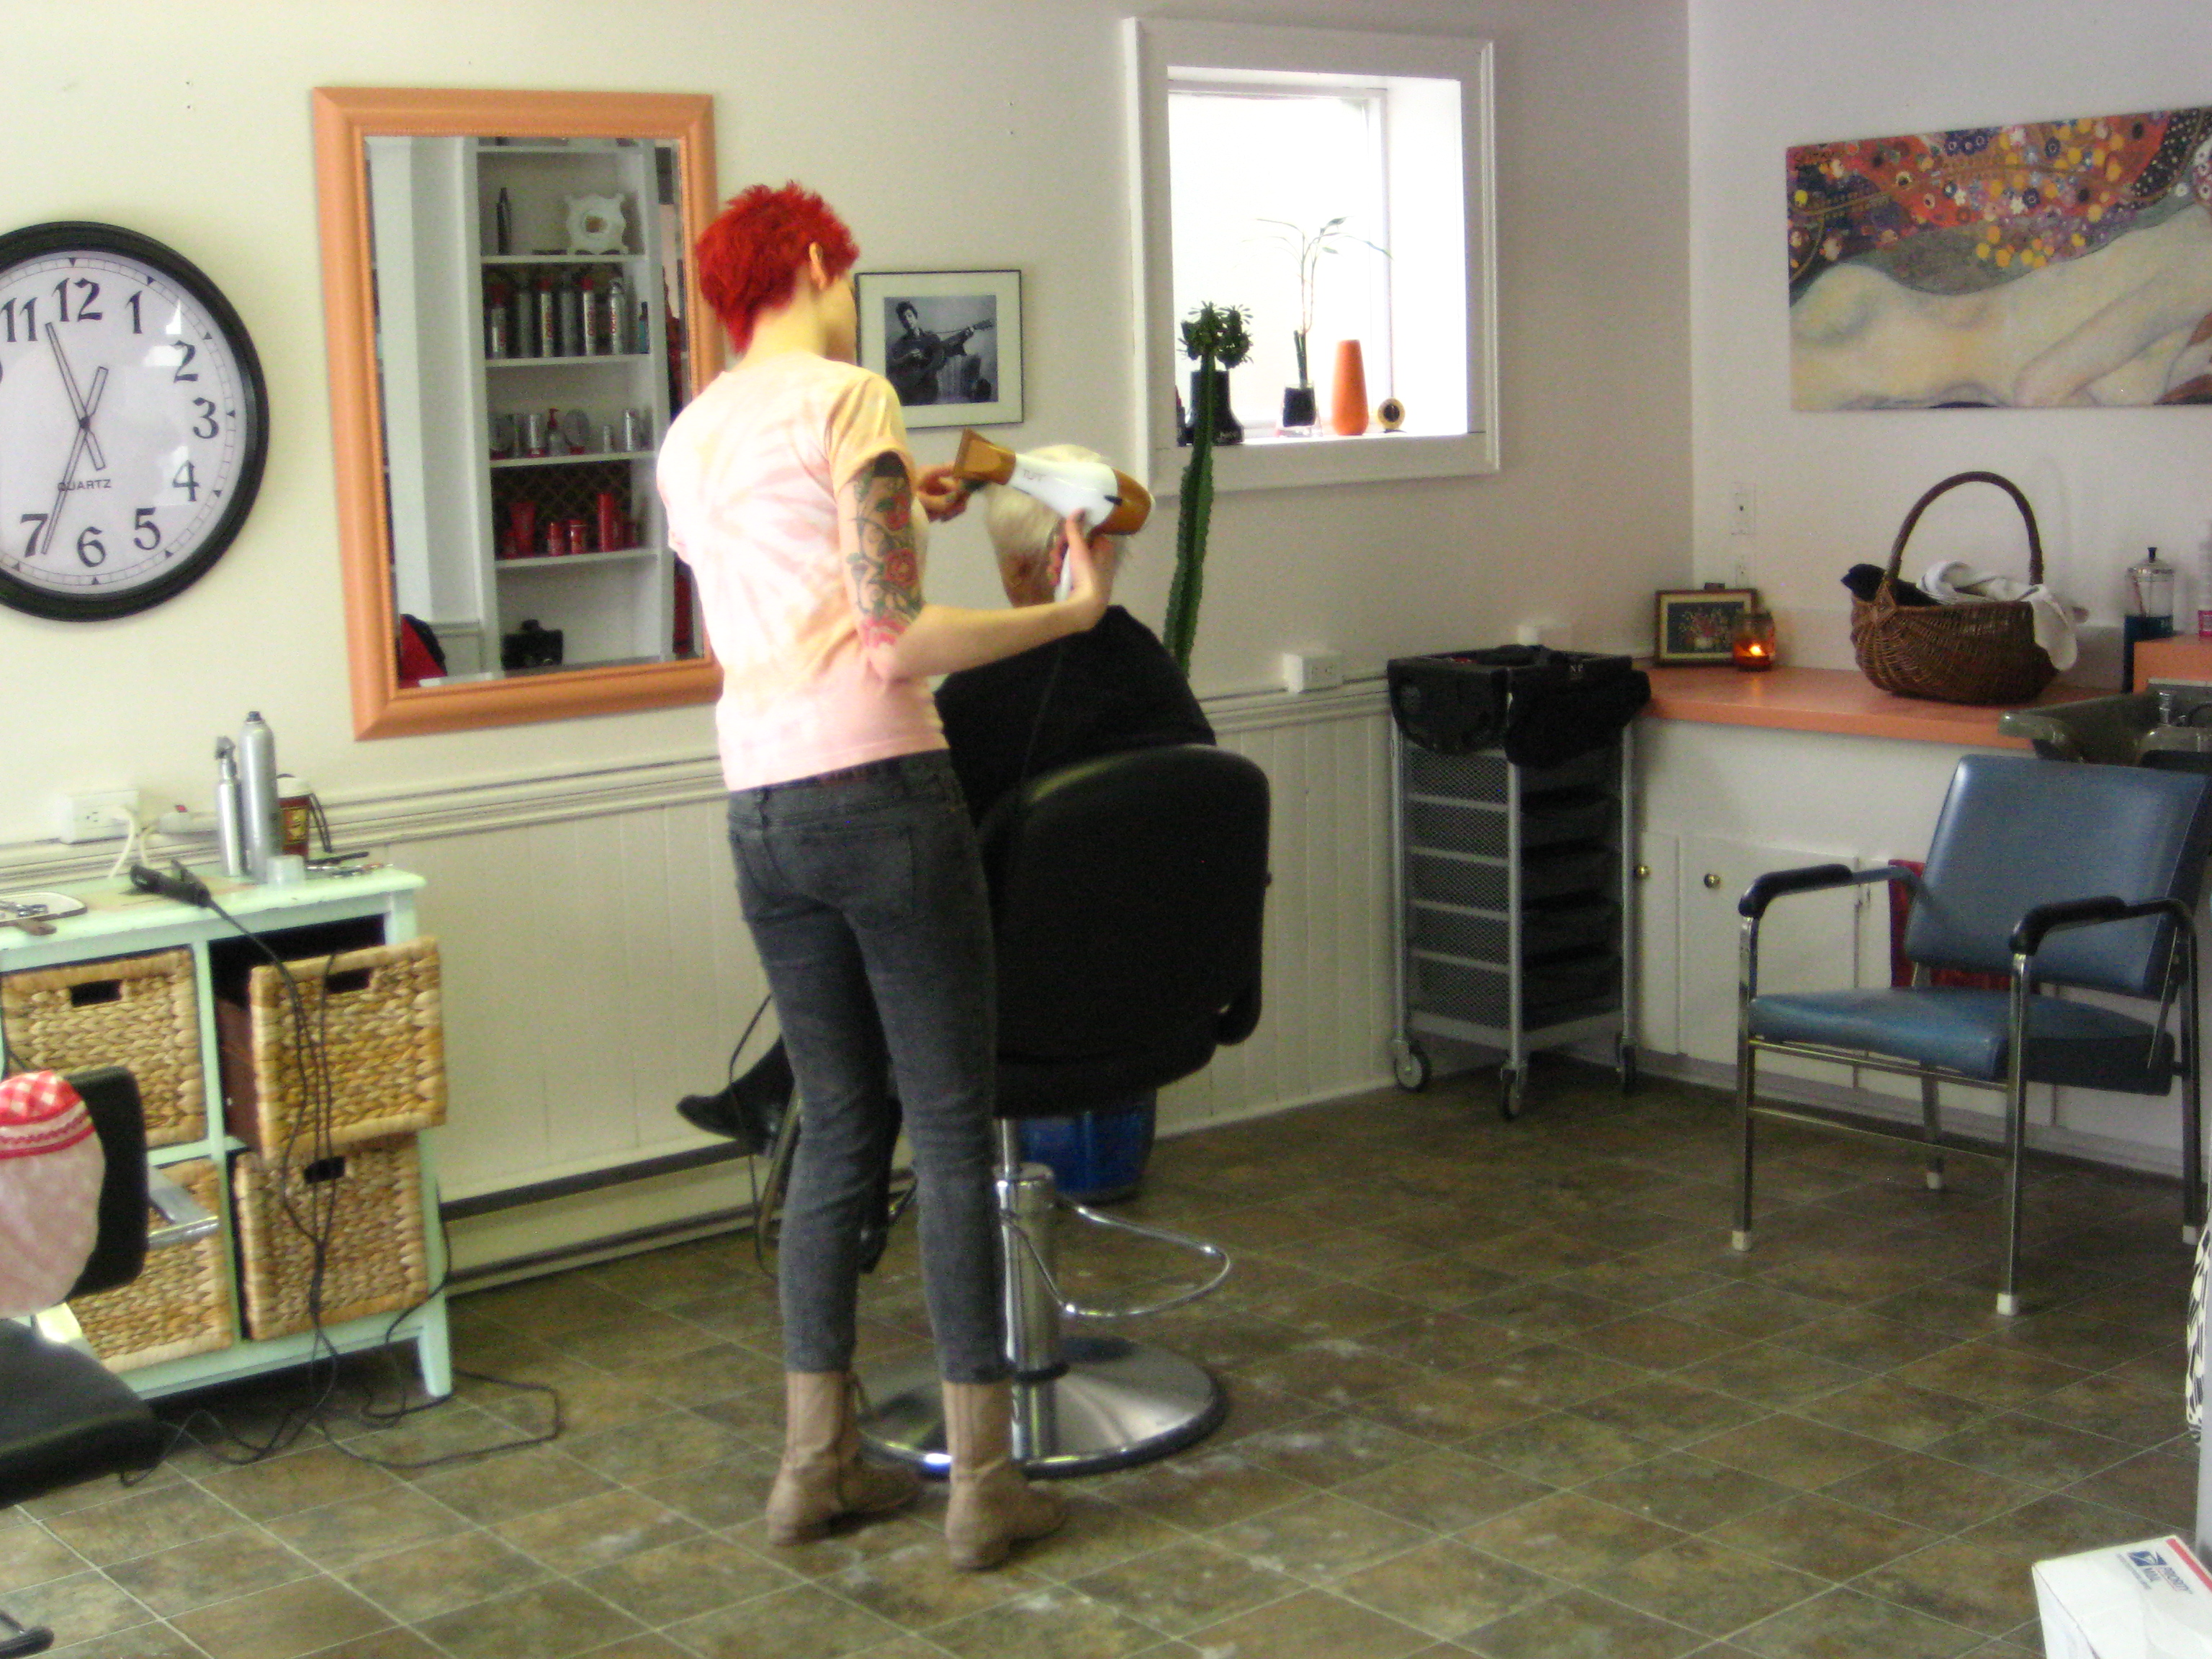 Locality expressions hair design bayfield ontario a - Expressions hair salon ...